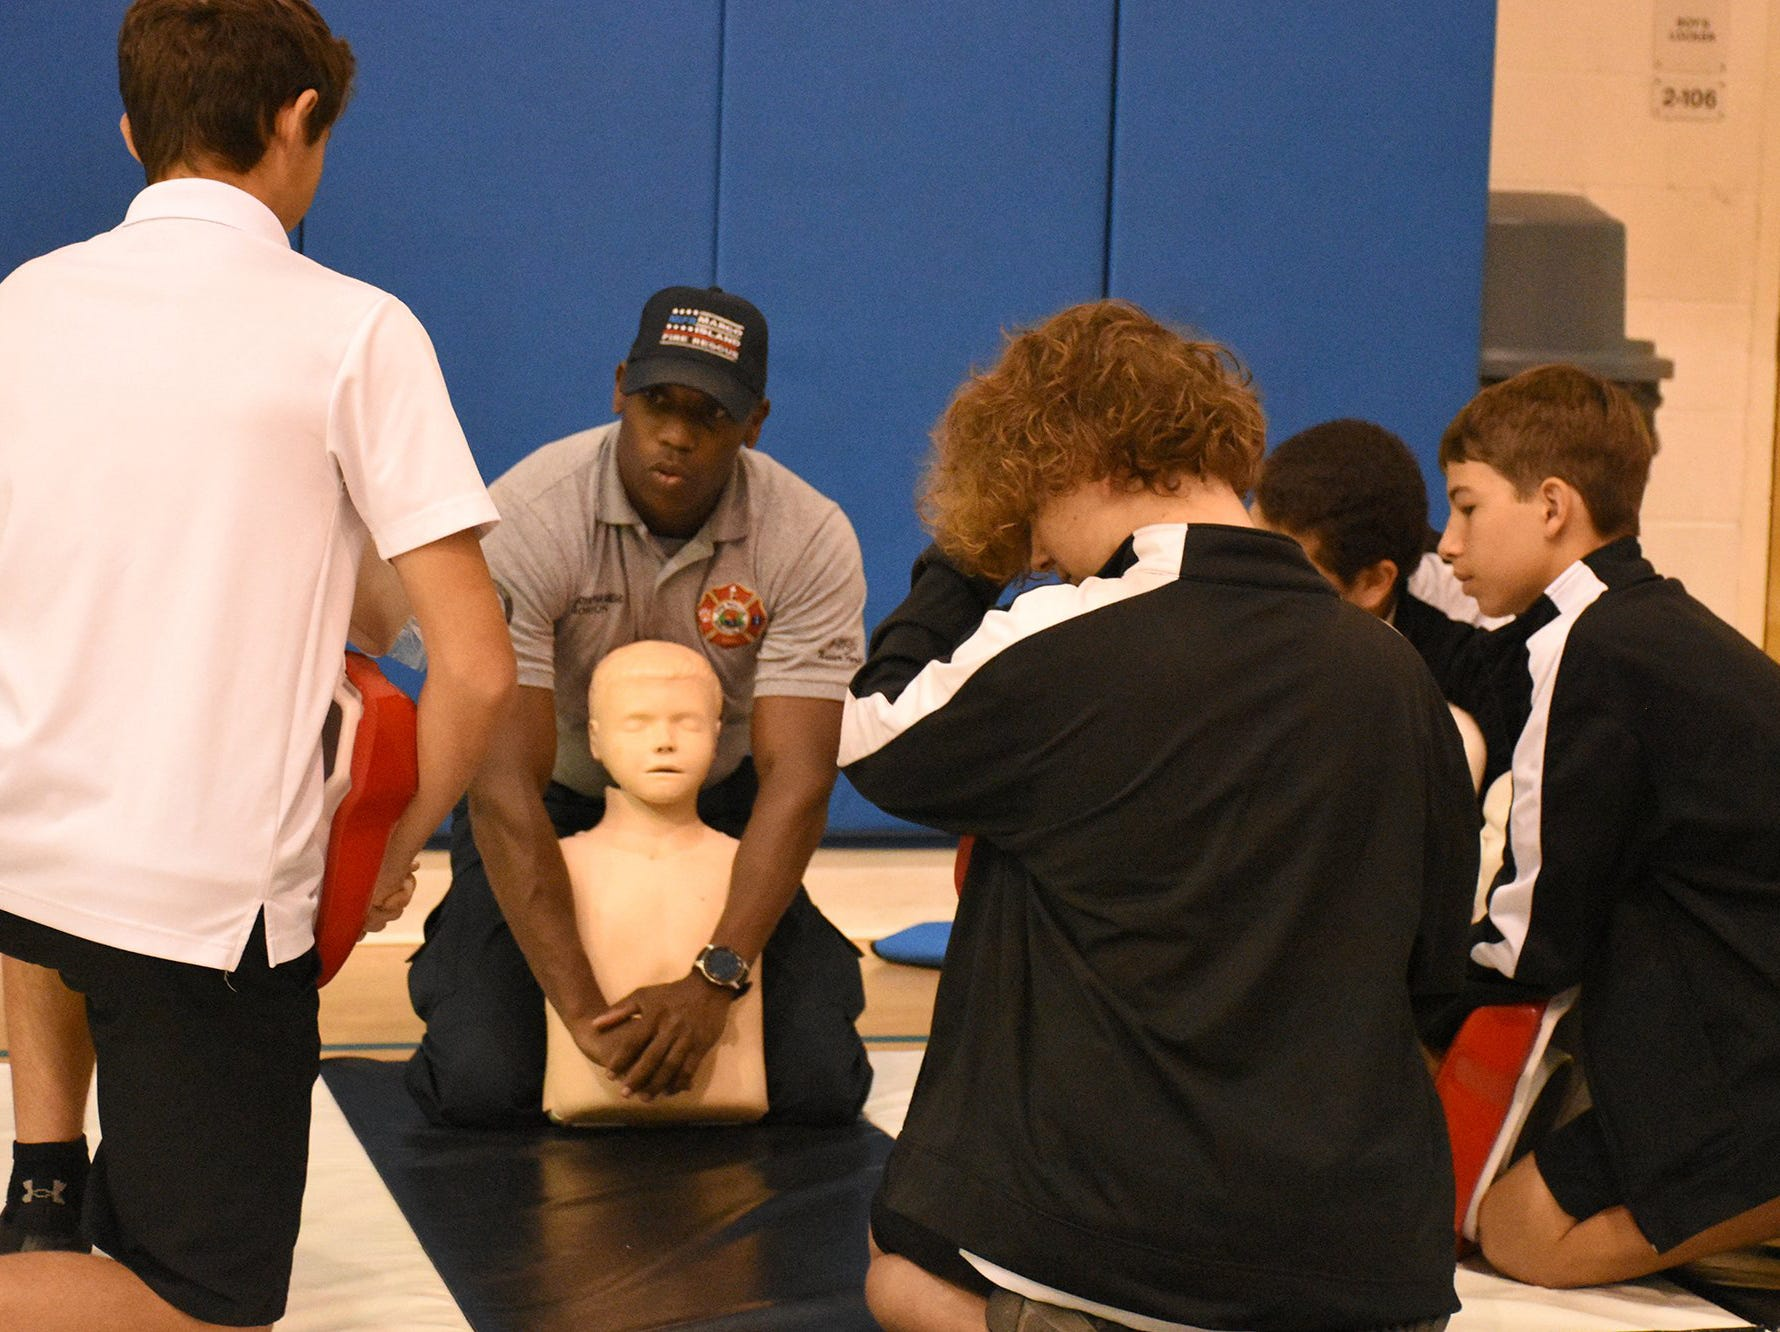 Firefighter/paramedic Tony Gordon demonstrates the Heimlich maneuver for students. The Marco Island Fire-Rescue Dept. trained all eighth graders at MICMS in CPR technique this week.